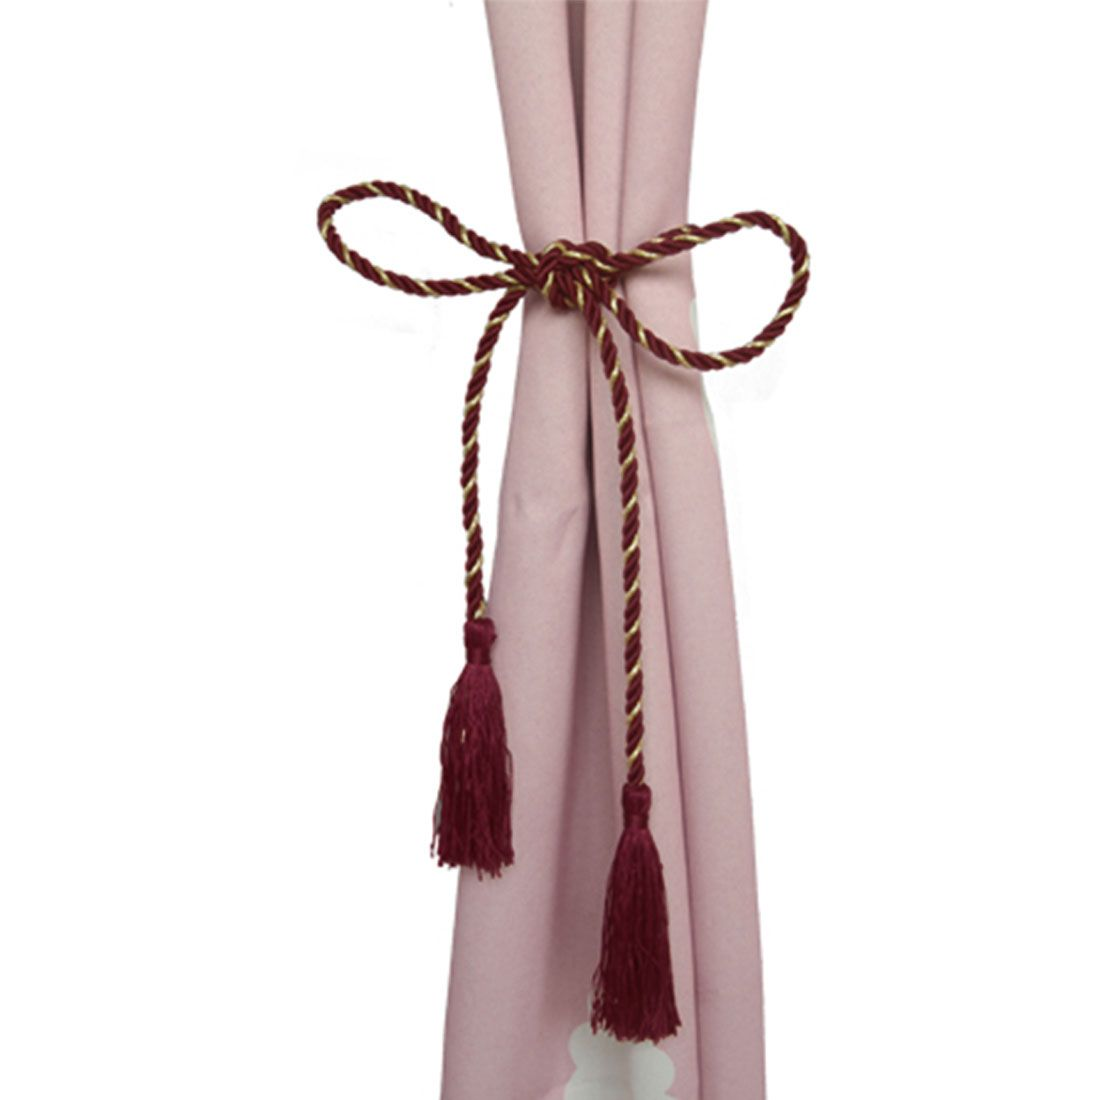 Best Sale Decorative Tassel Curtain Fringe Ropes Tiebacks Curtain Straps Home Window Accessaries. Yesterday's price: US $0.46 (0.38 EUR). Today's price: US $0.39 (0.32 EUR). Discount: 15%. #curtainfringe